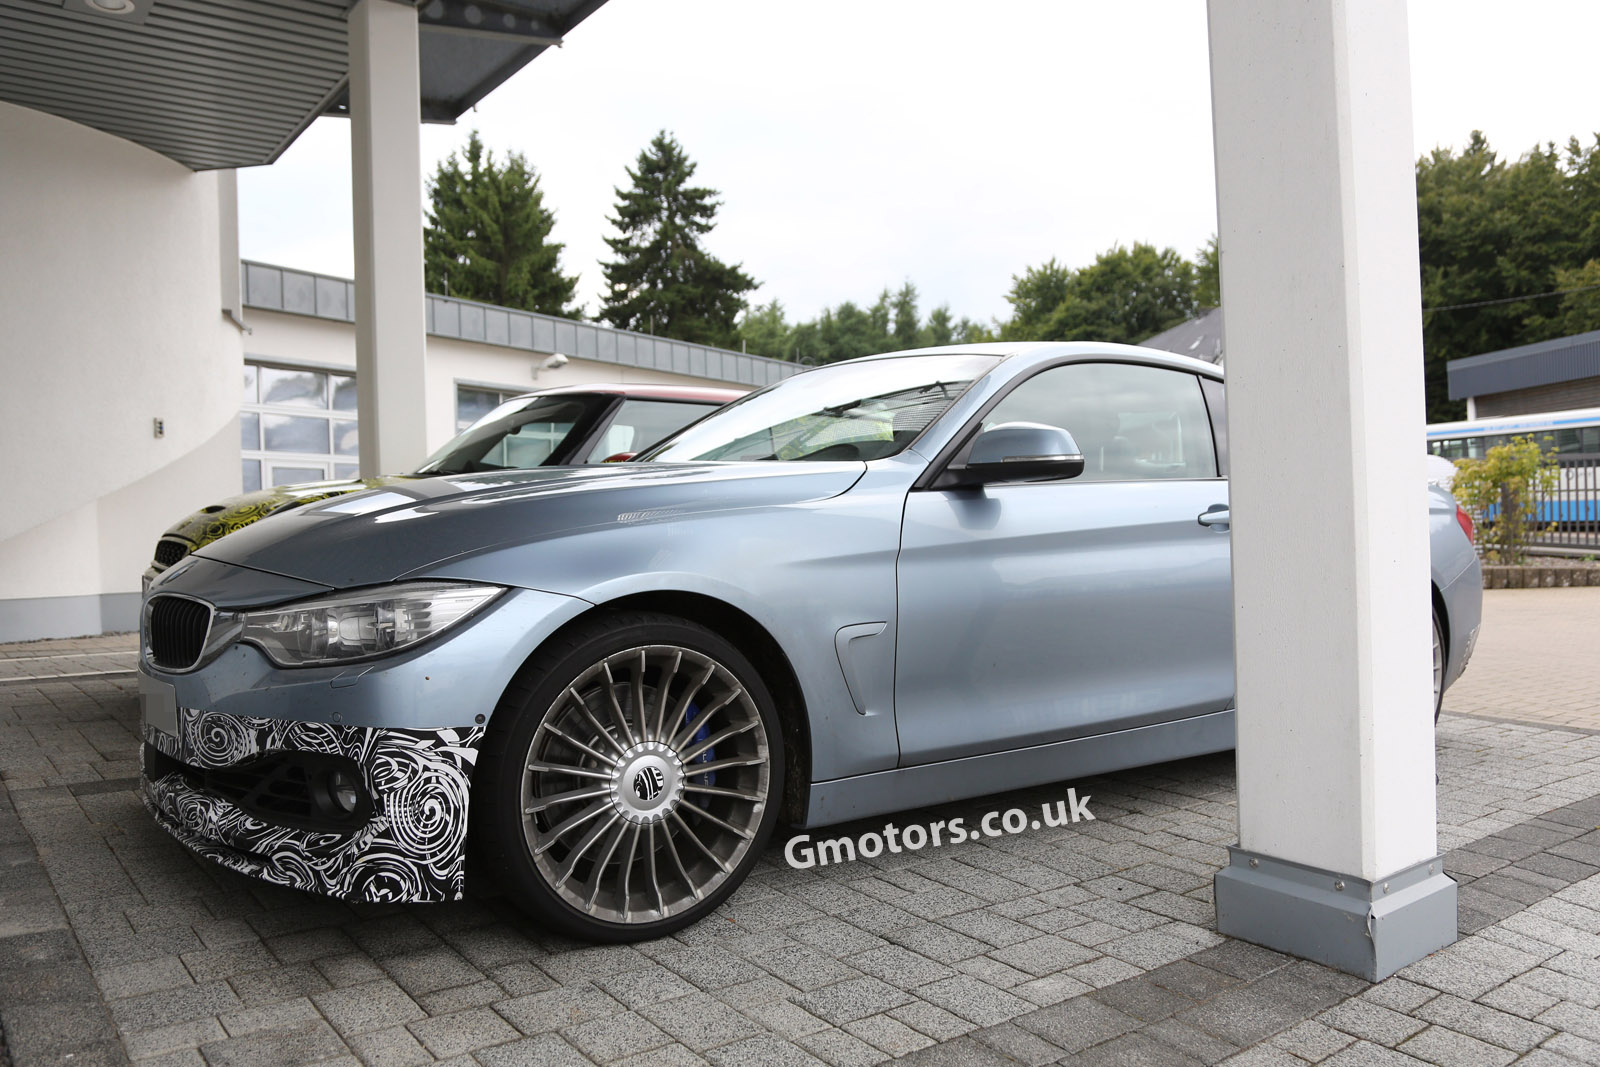 2014 BMW Alpina B4 Biturbo Coupe 4